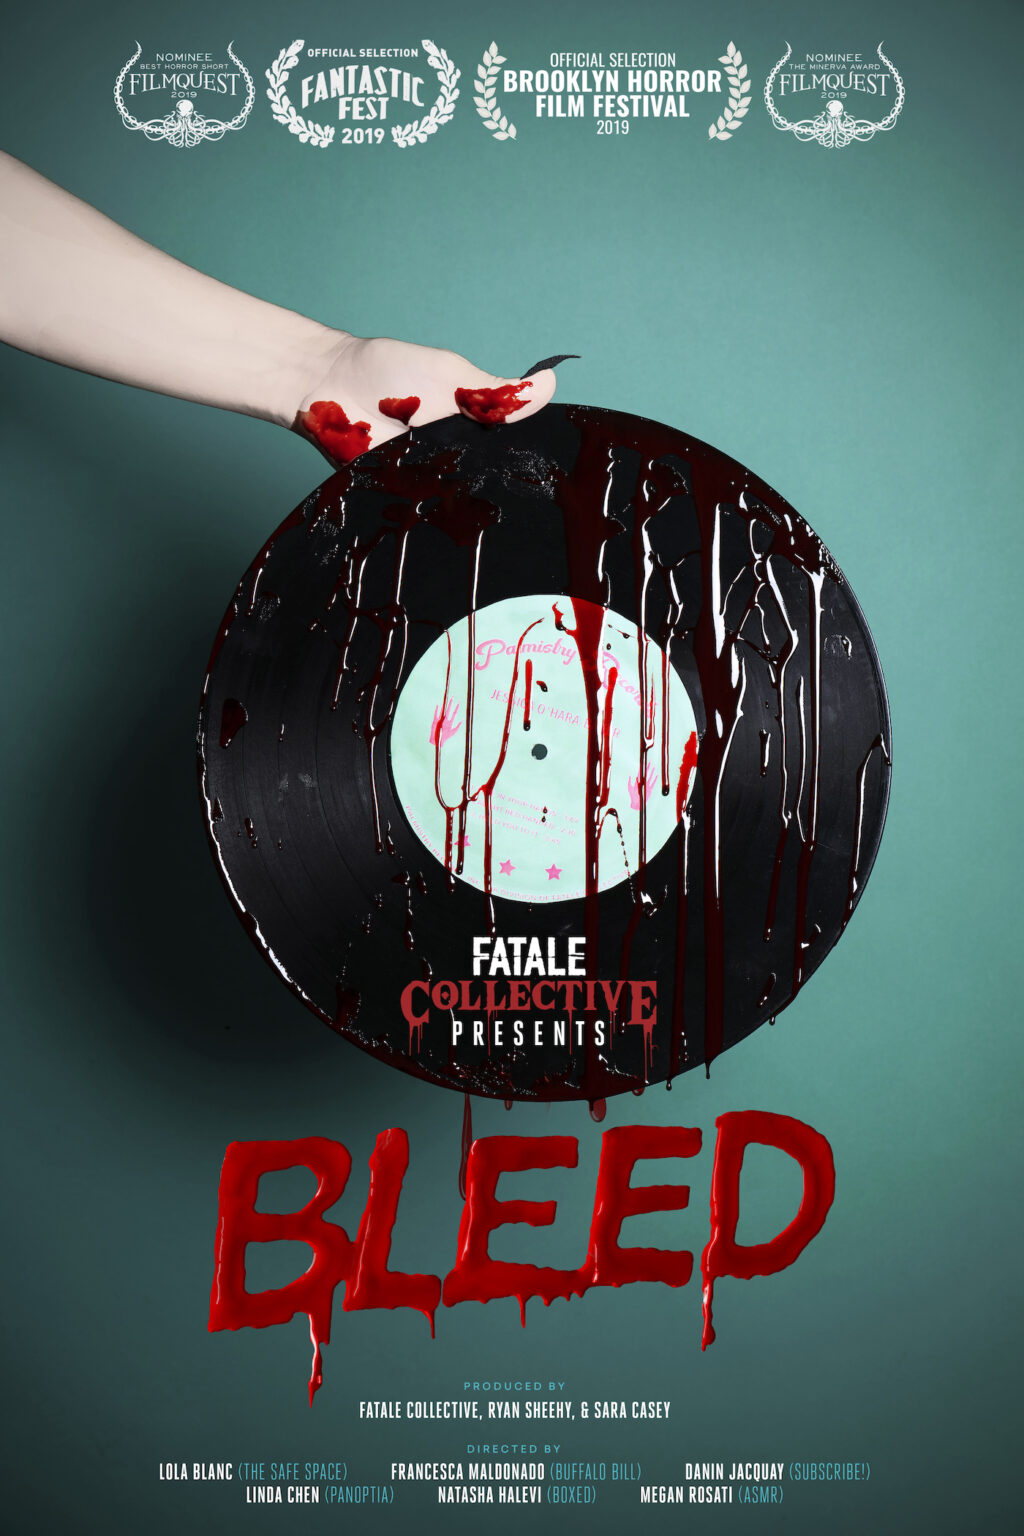 bleed Boxed 1024x1536 - Fantastic Fest 2019 Exclusive: Character Posters For Shorts Anthology BLEED